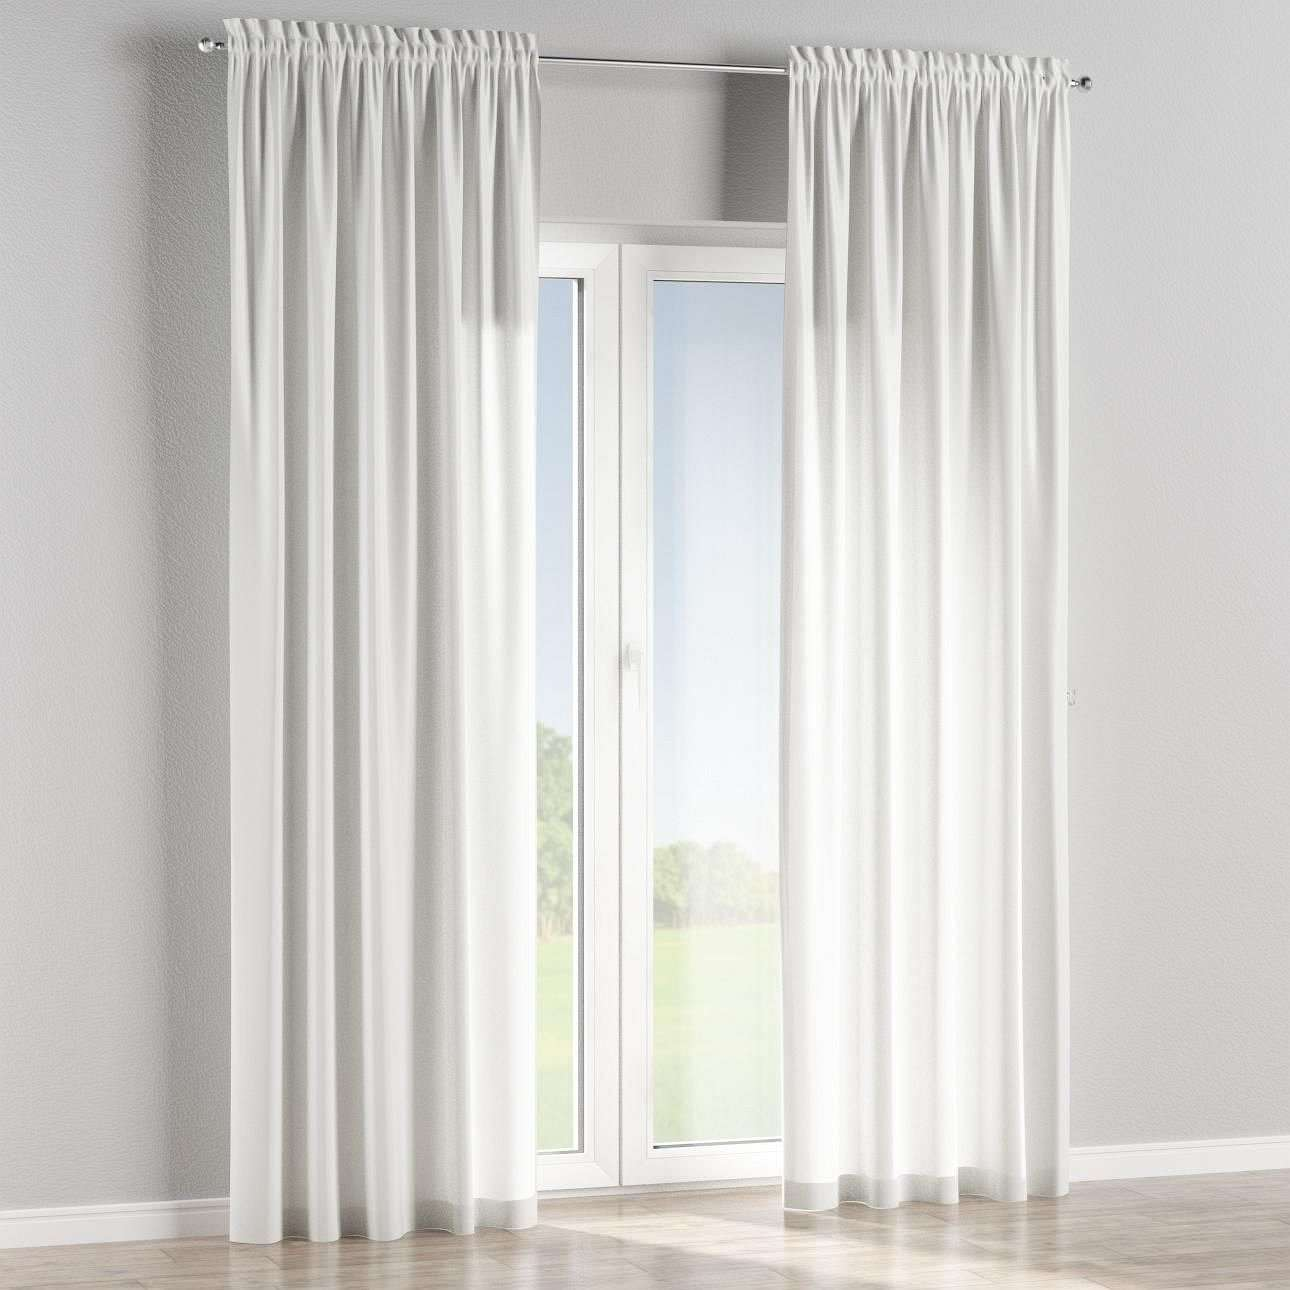 Slot and frill lined curtains in collection Rustica, fabric: 138-25